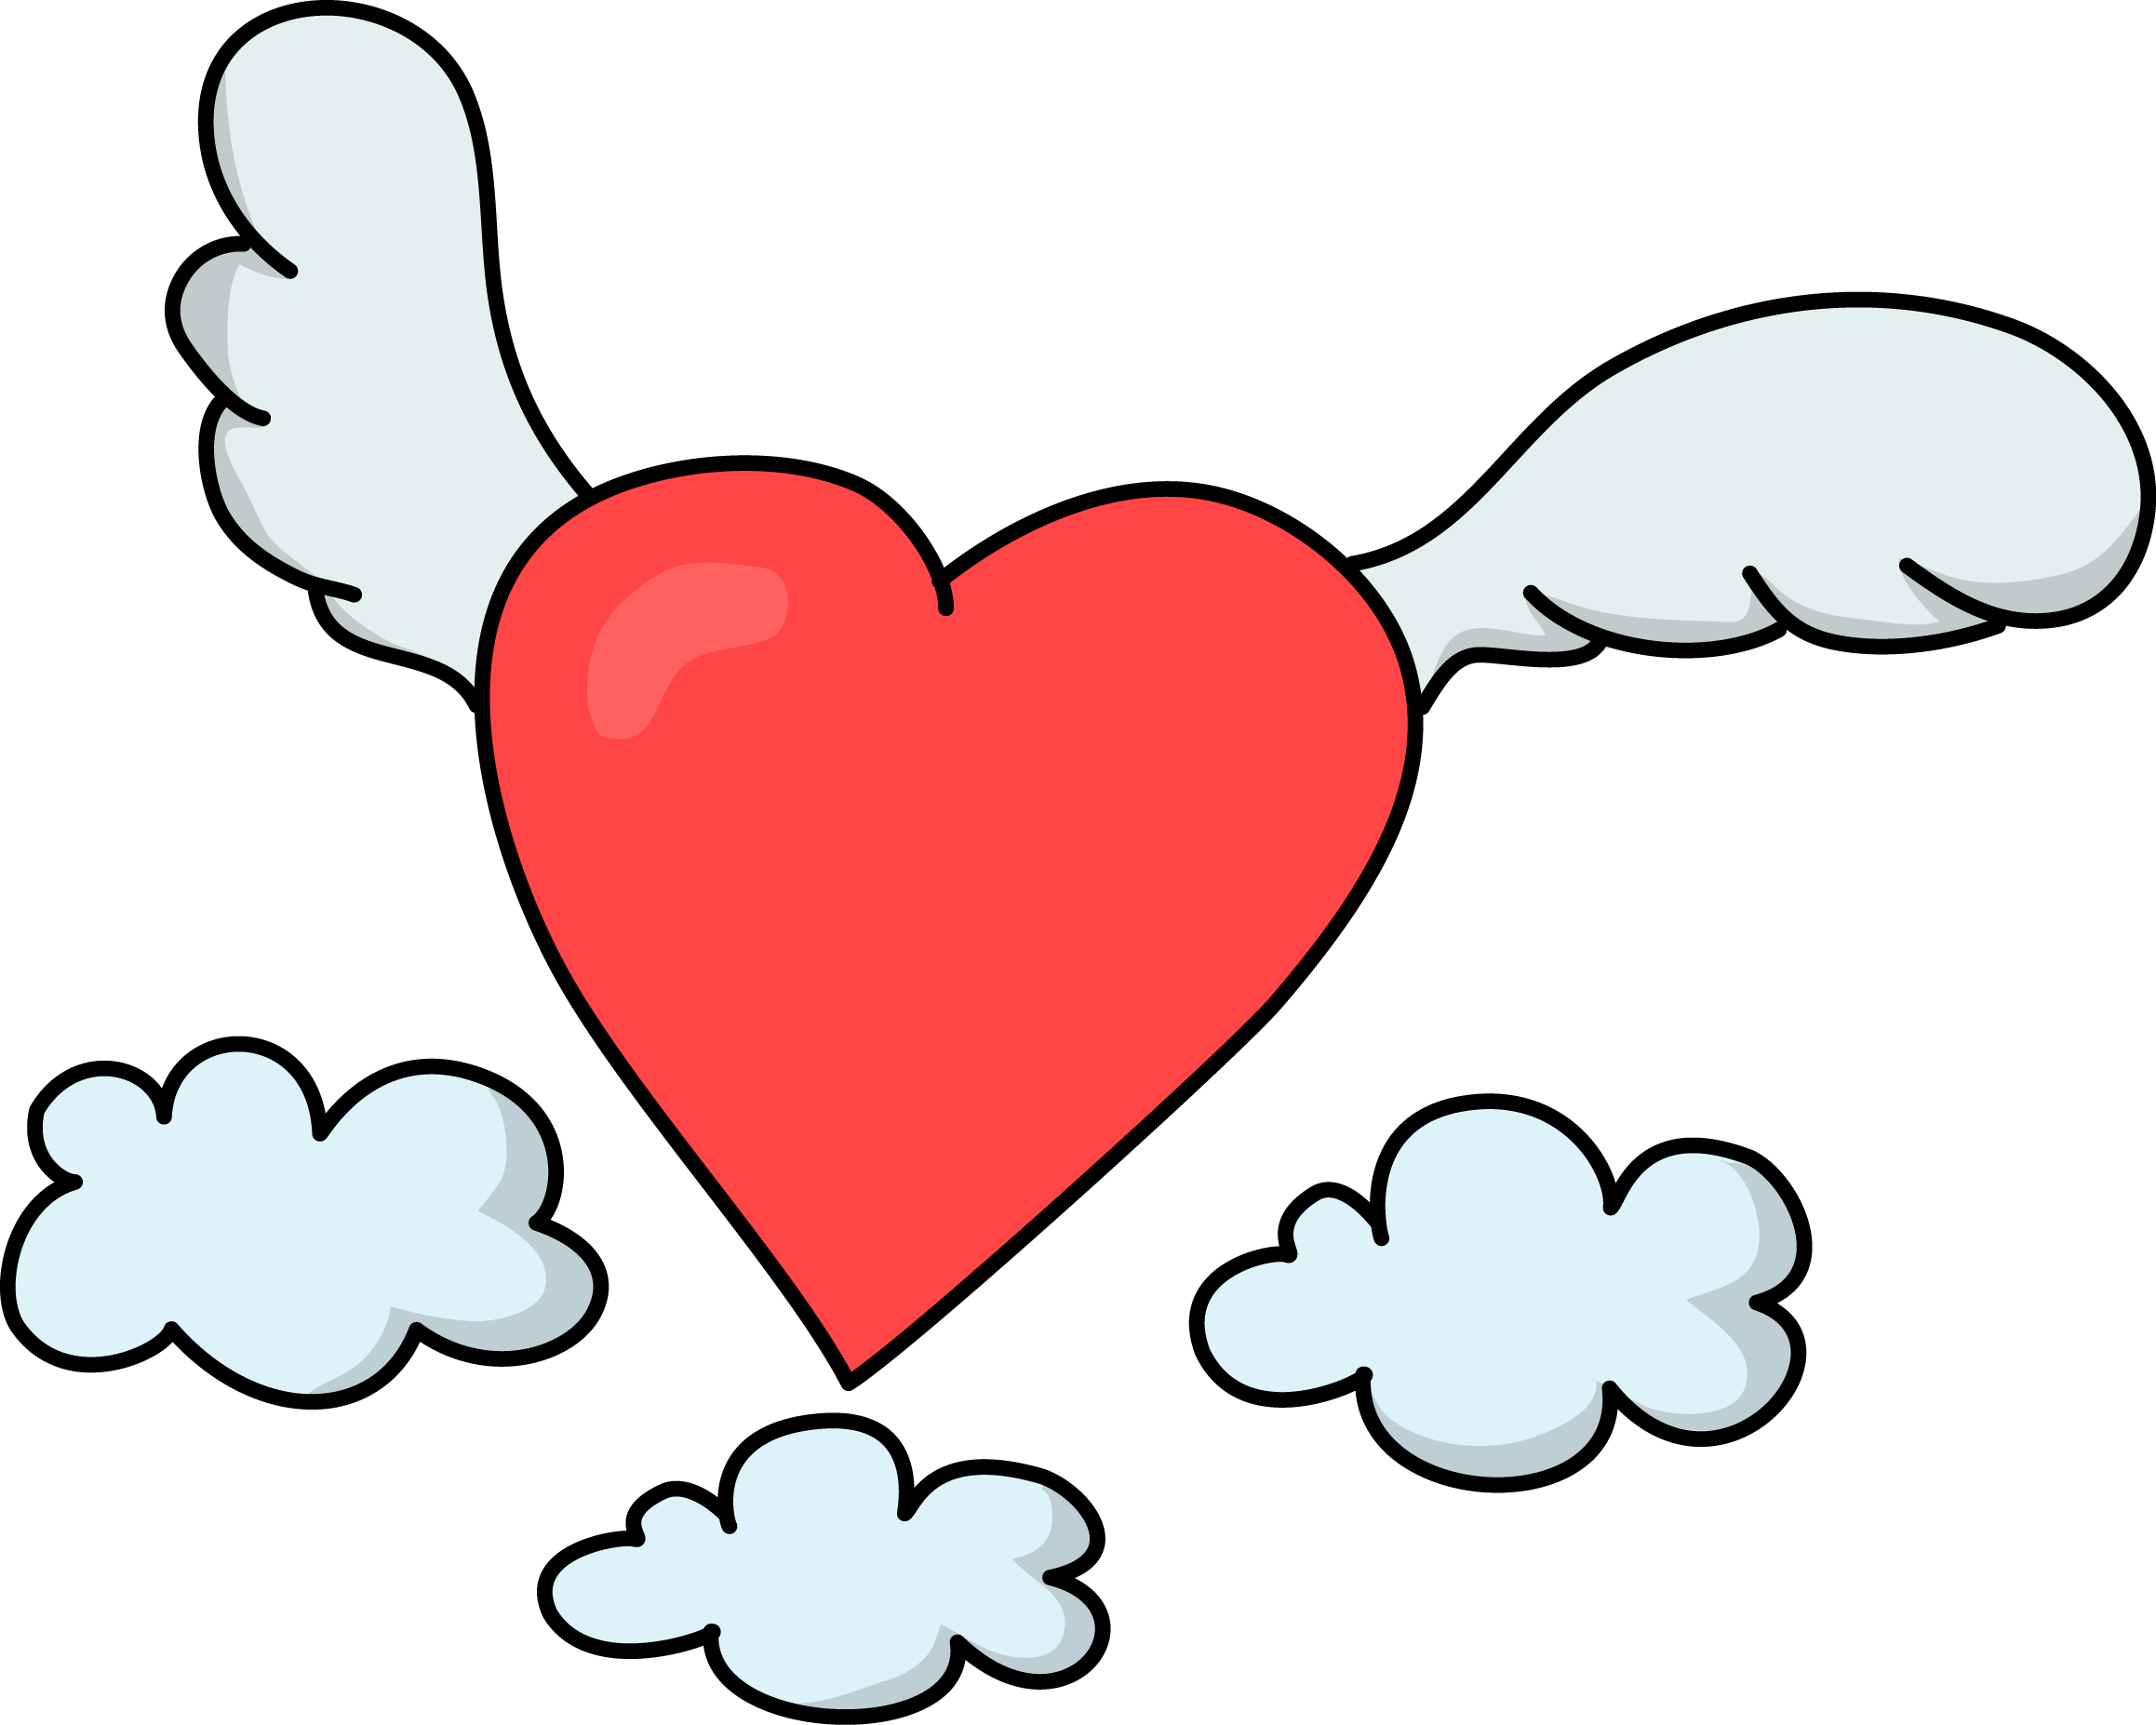 Flying clipart love. Free heart cliparts download